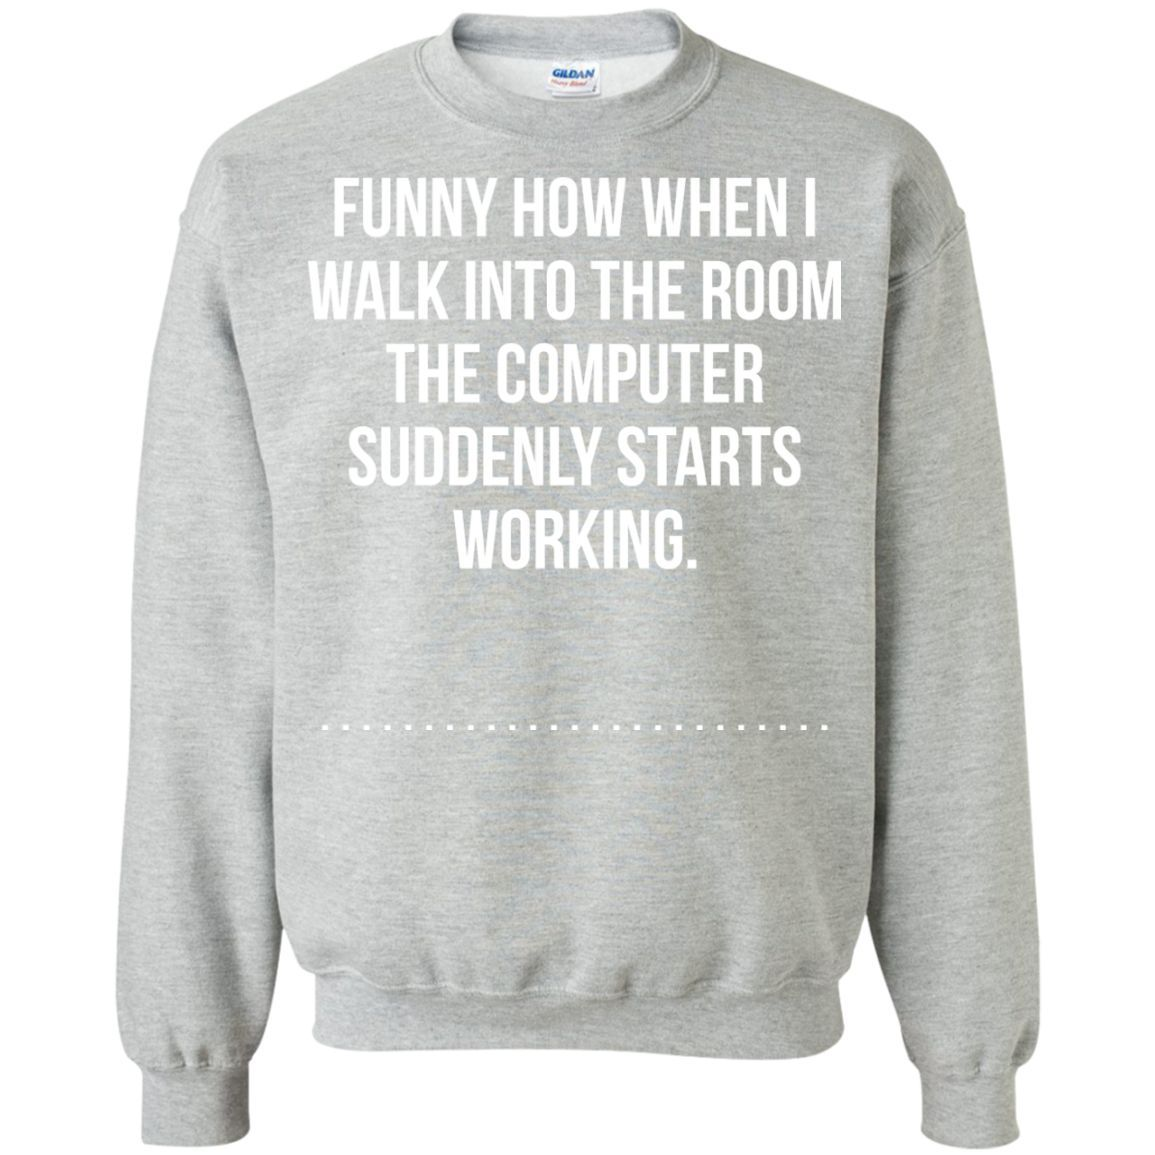 How When I Walk Into The Room The Computer Suddenly Starts Working Printed Crewneck Pullover Sweatshirt 8 oz